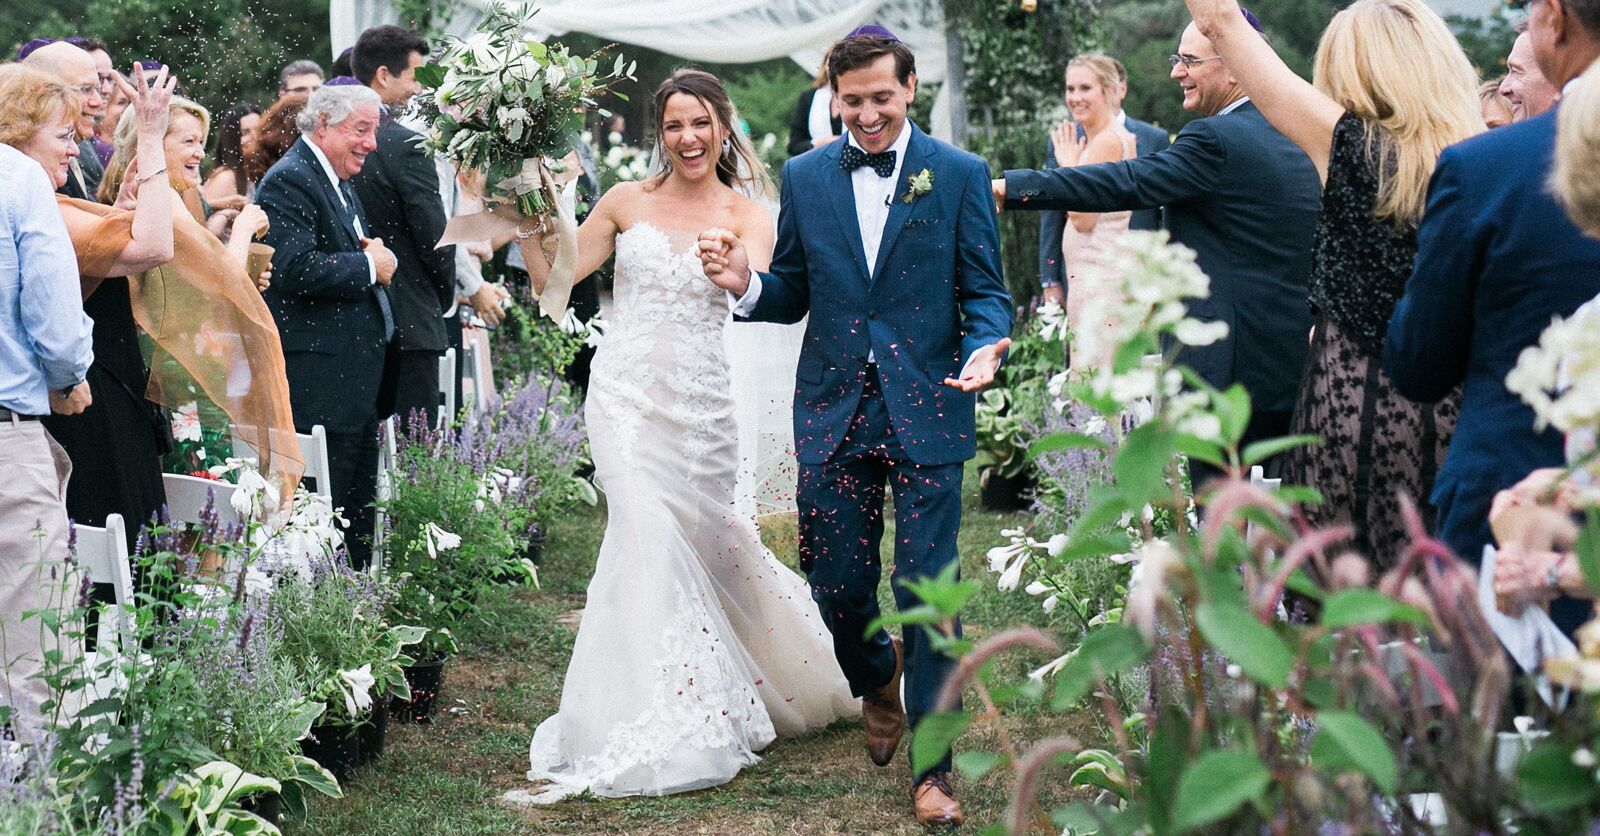 The Biggest Wedding Planning Tips and Regrets From Real Newlyweds